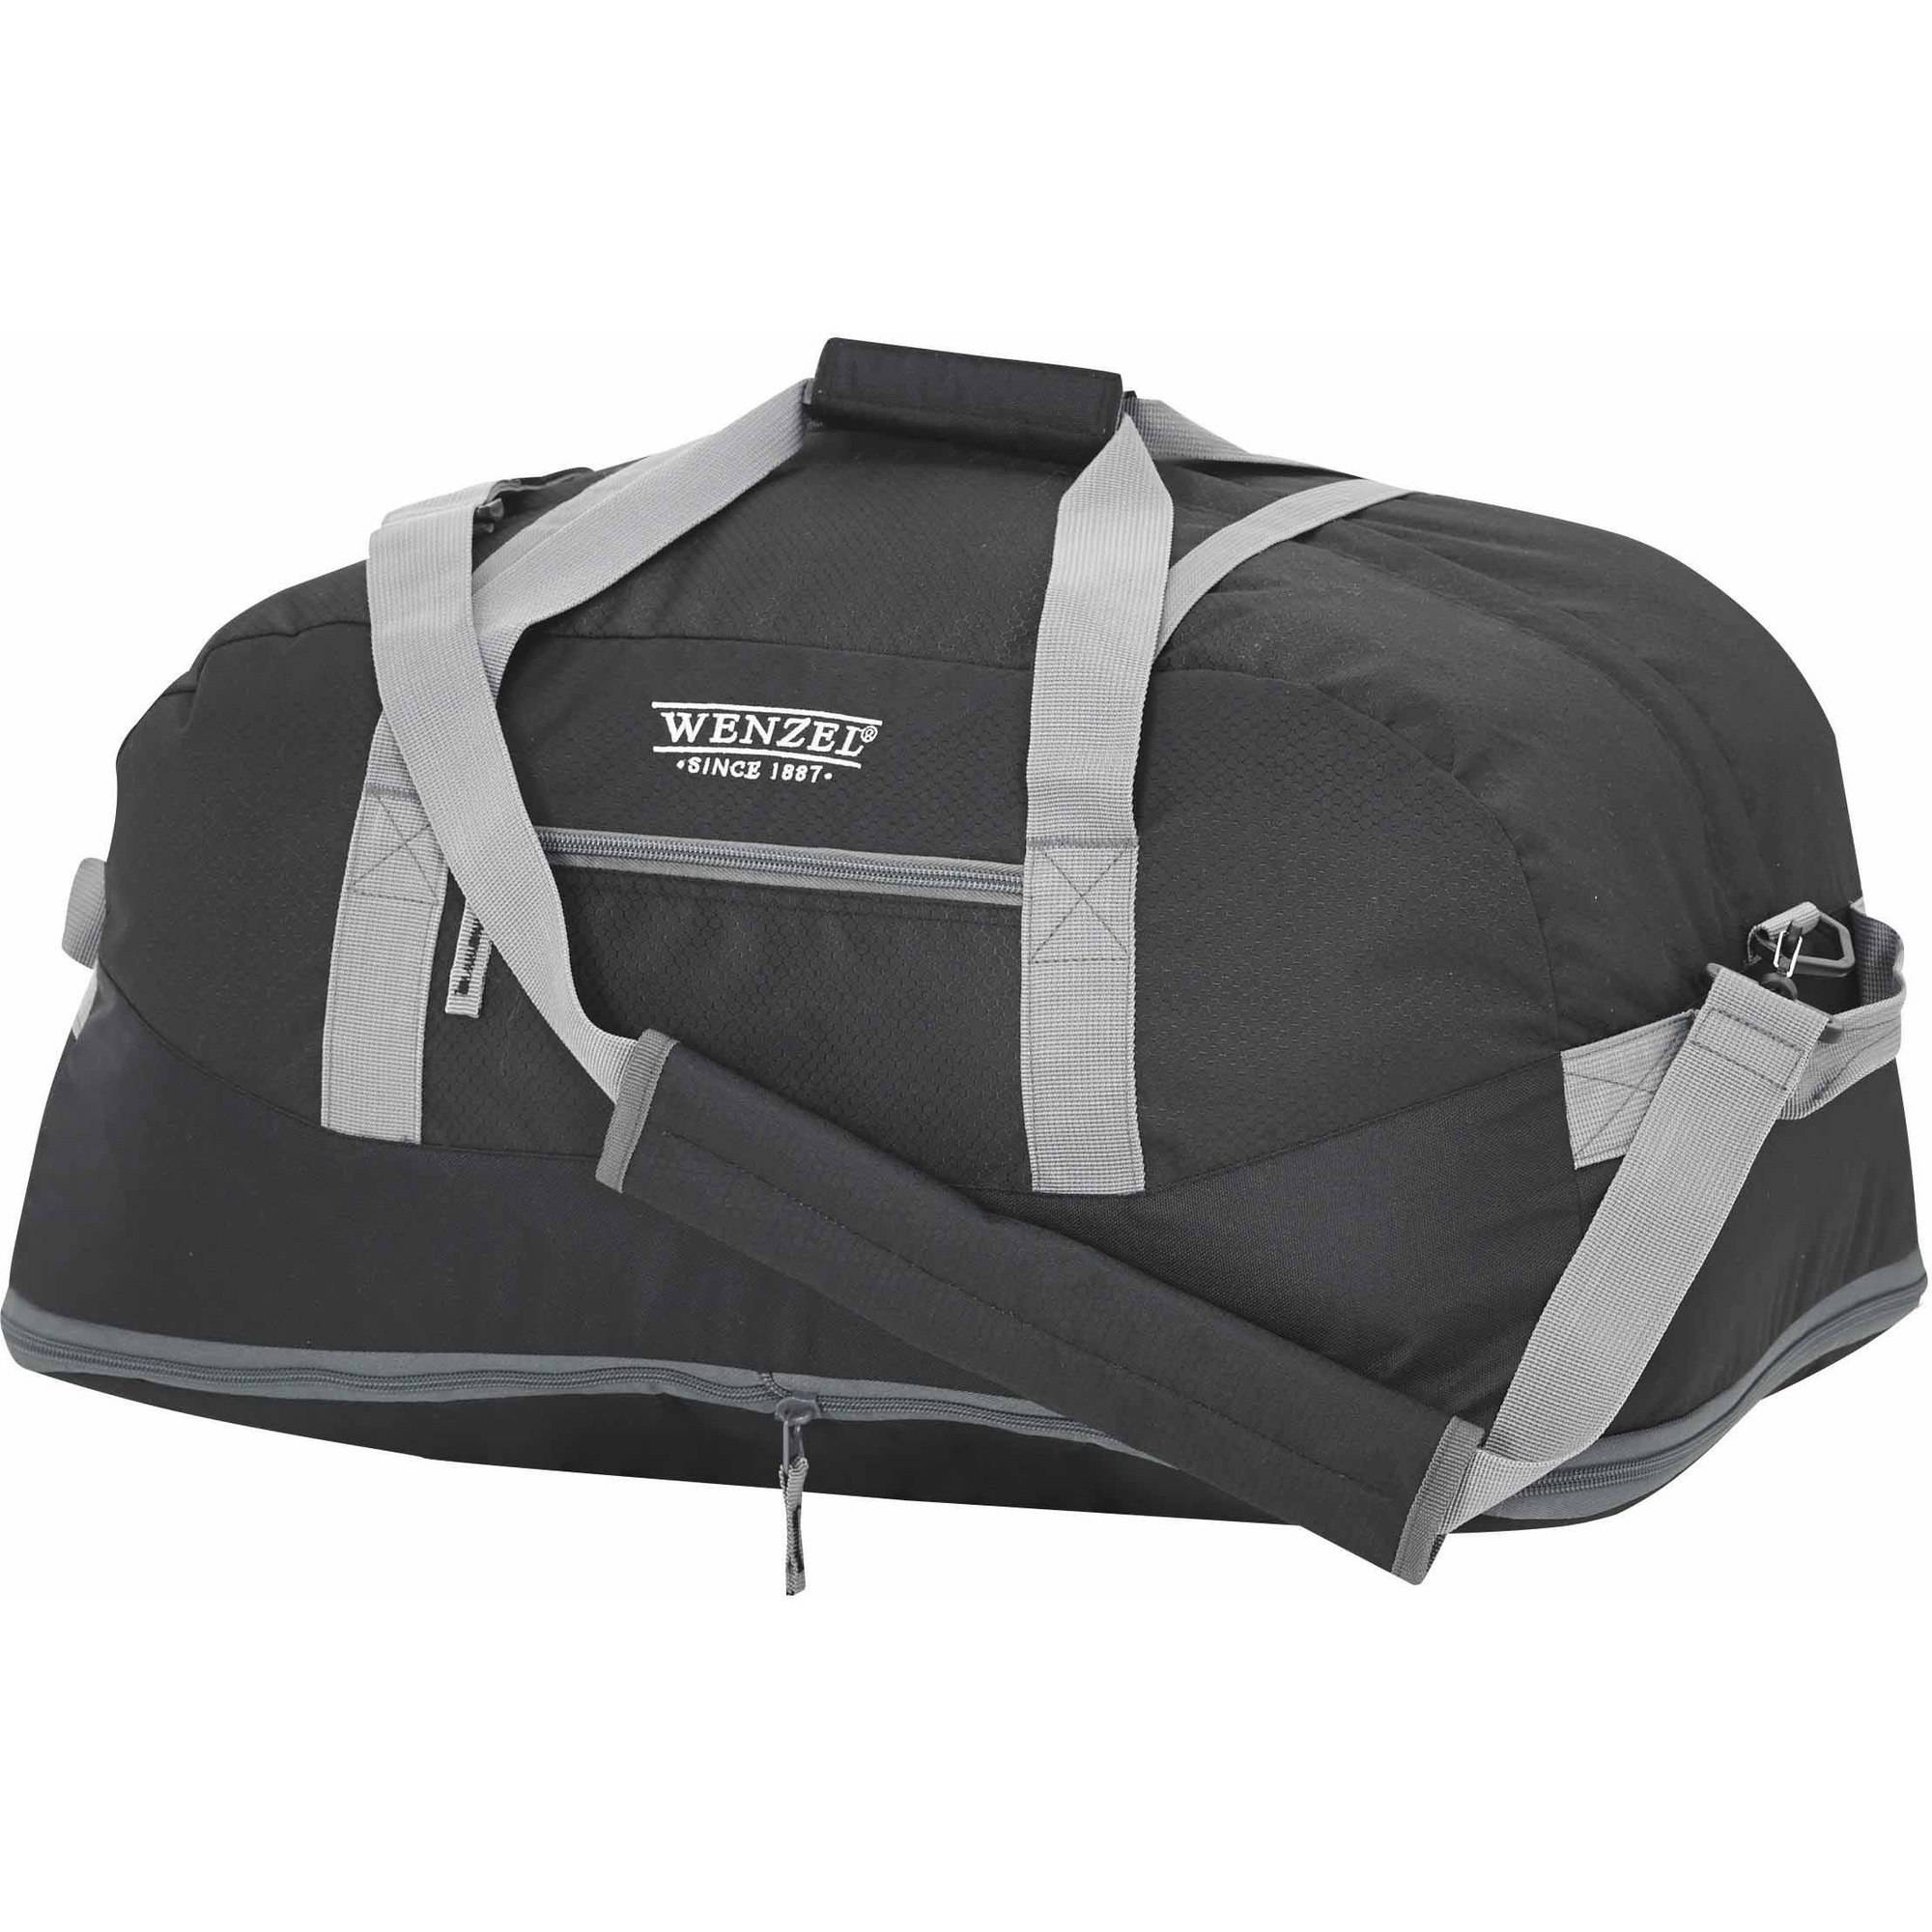 Wenzel Dual Zone Duffle by